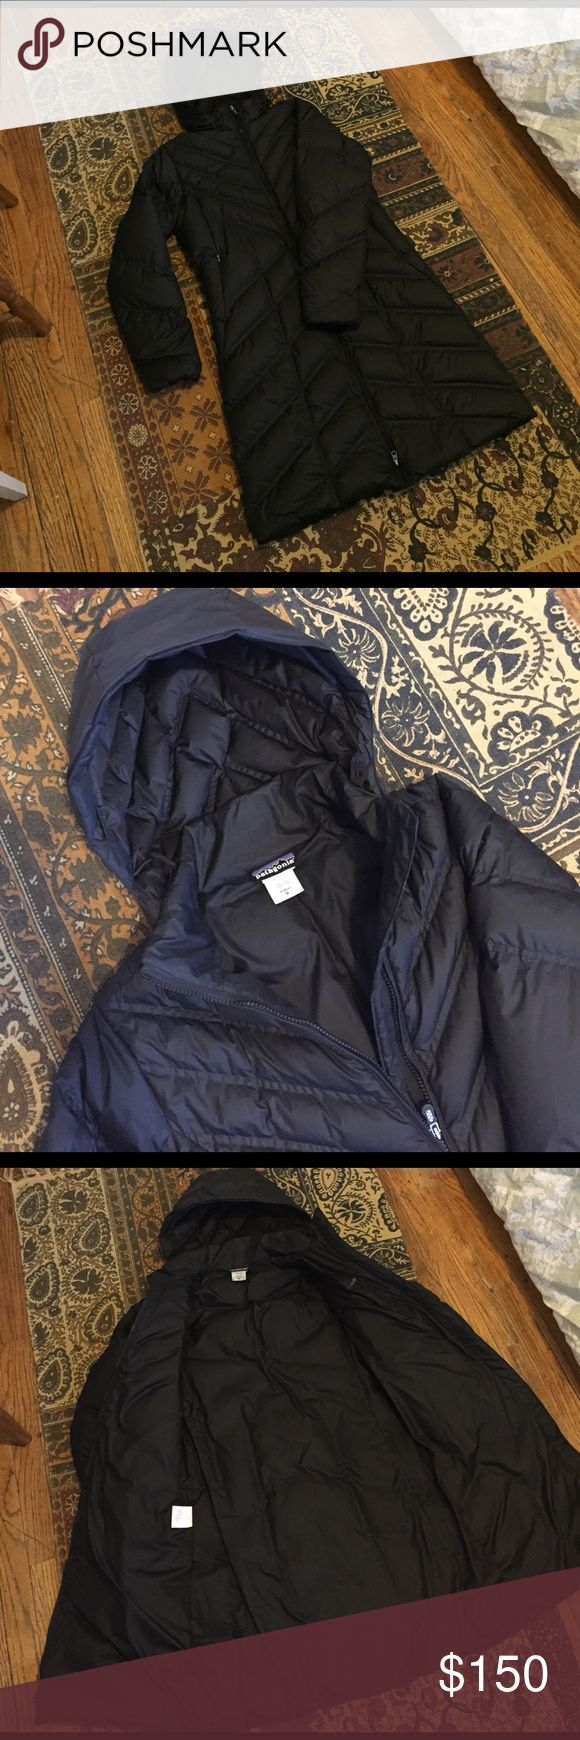 Patagonia black parka jacket Patagonia black parka jacket - size women's medium - removed hood - zip up - two zip exterior pockets - one interior zip pocket - in excellent basically brand new condition Patagonia Jackets & Coats Puffers